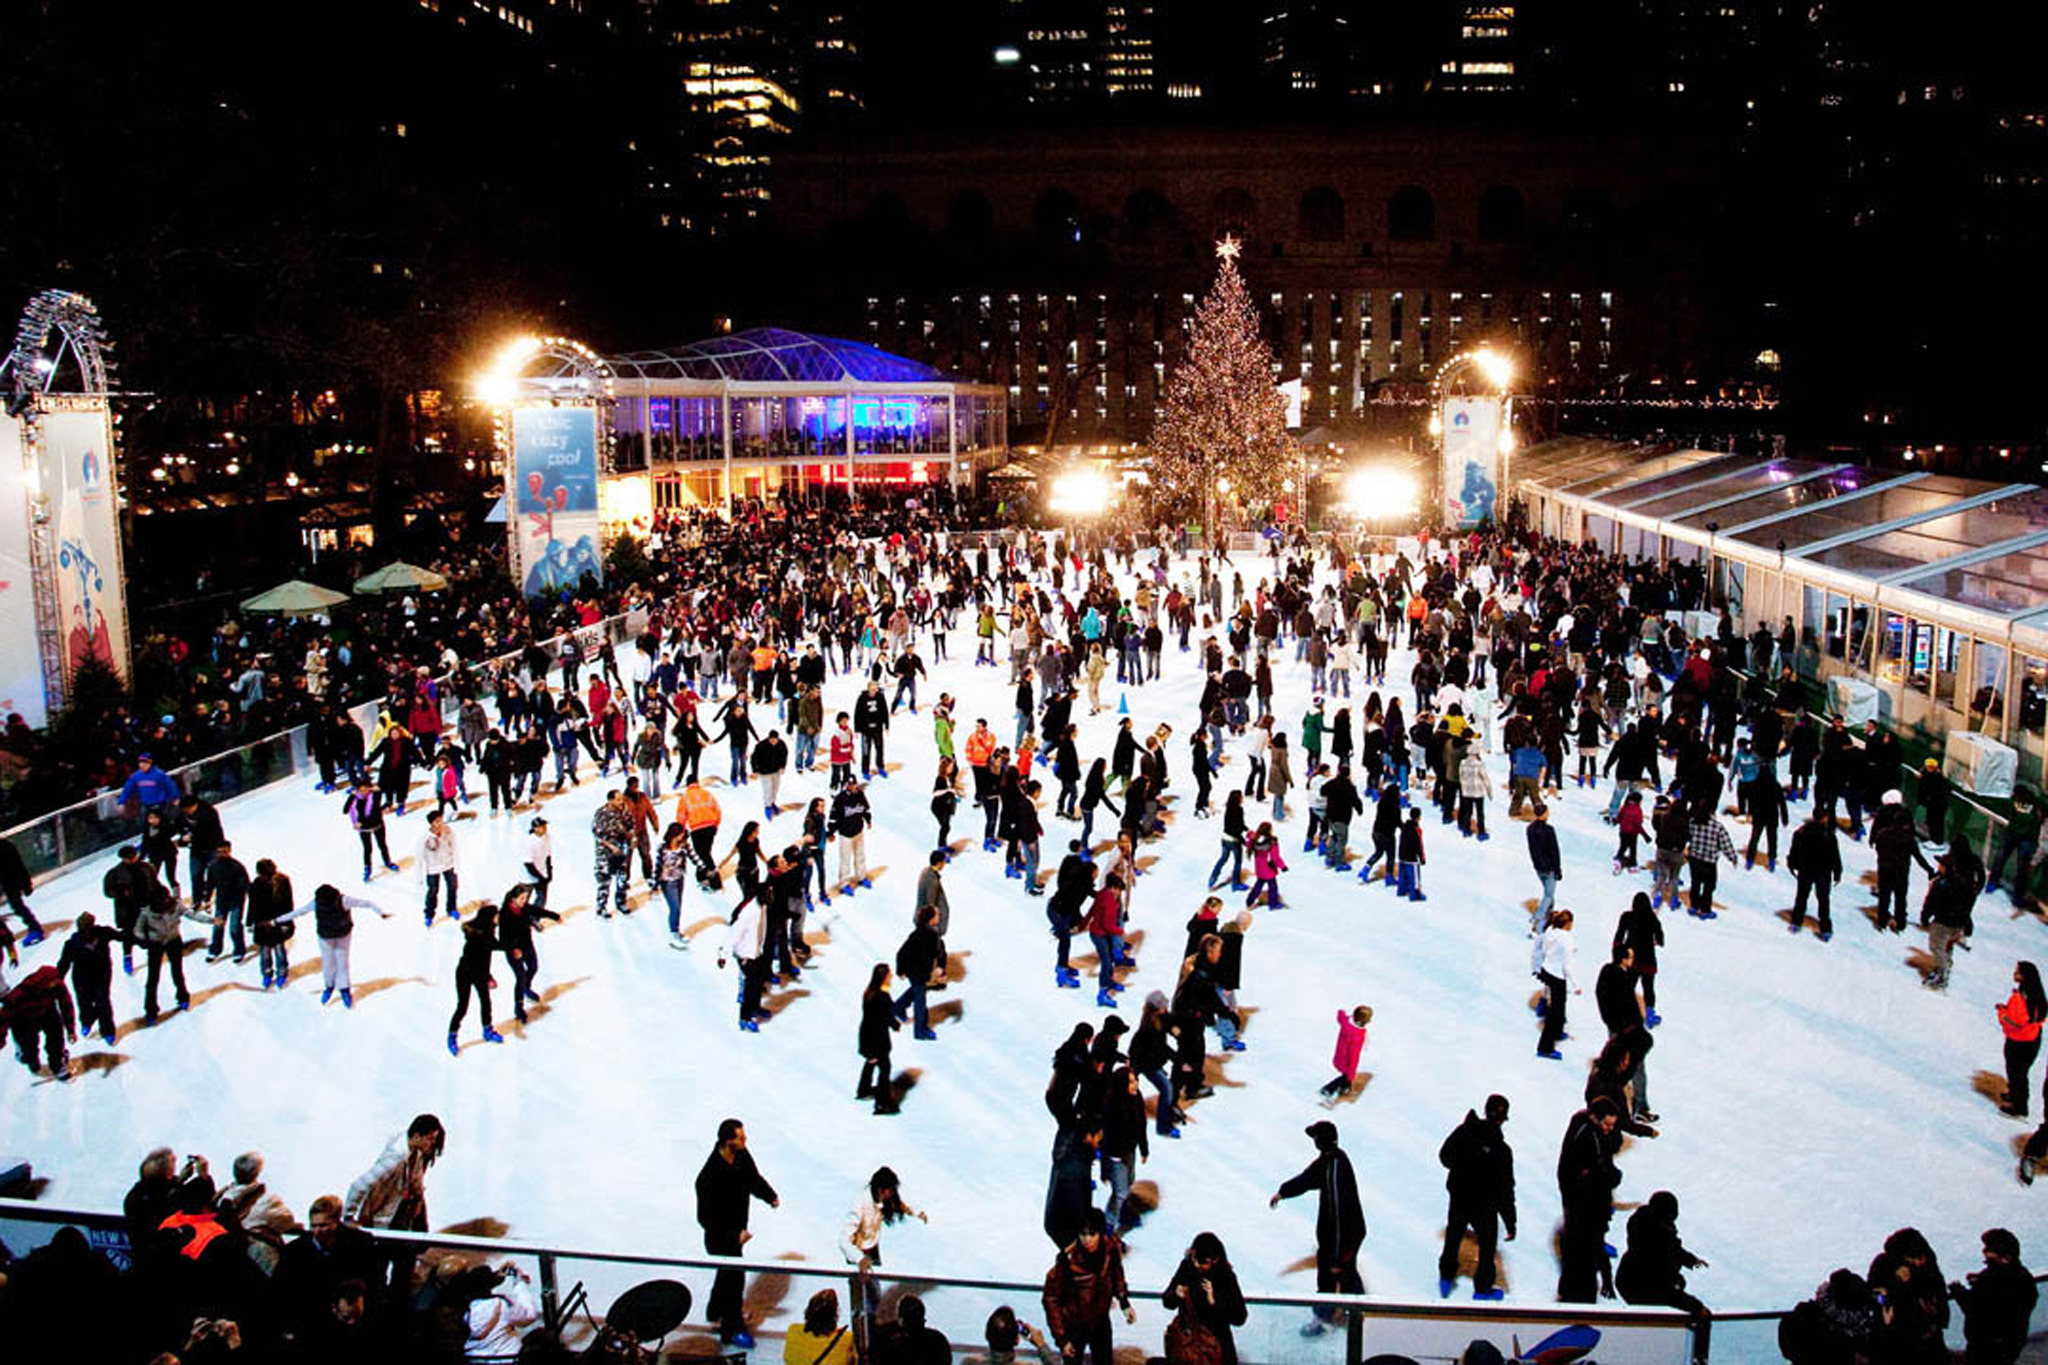 The Winter Village at Bryant Park